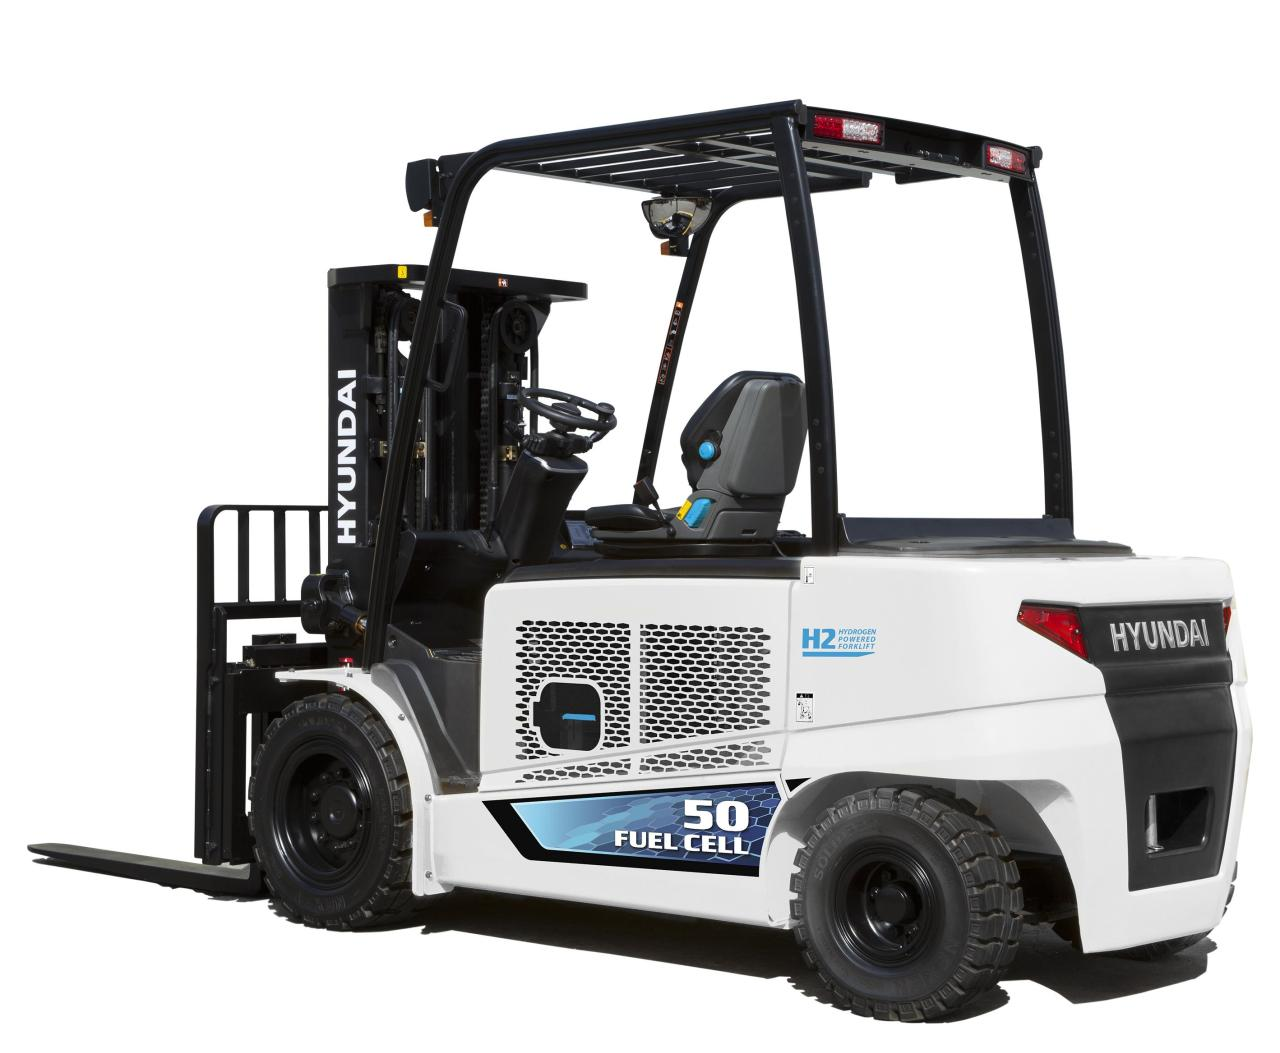 This photo taken on Tuesday, shows a 5-ton forklift powered by hydrogen fuel cells, which was developed by the company in 2020. (Hyundai Construction Equipment Co.)